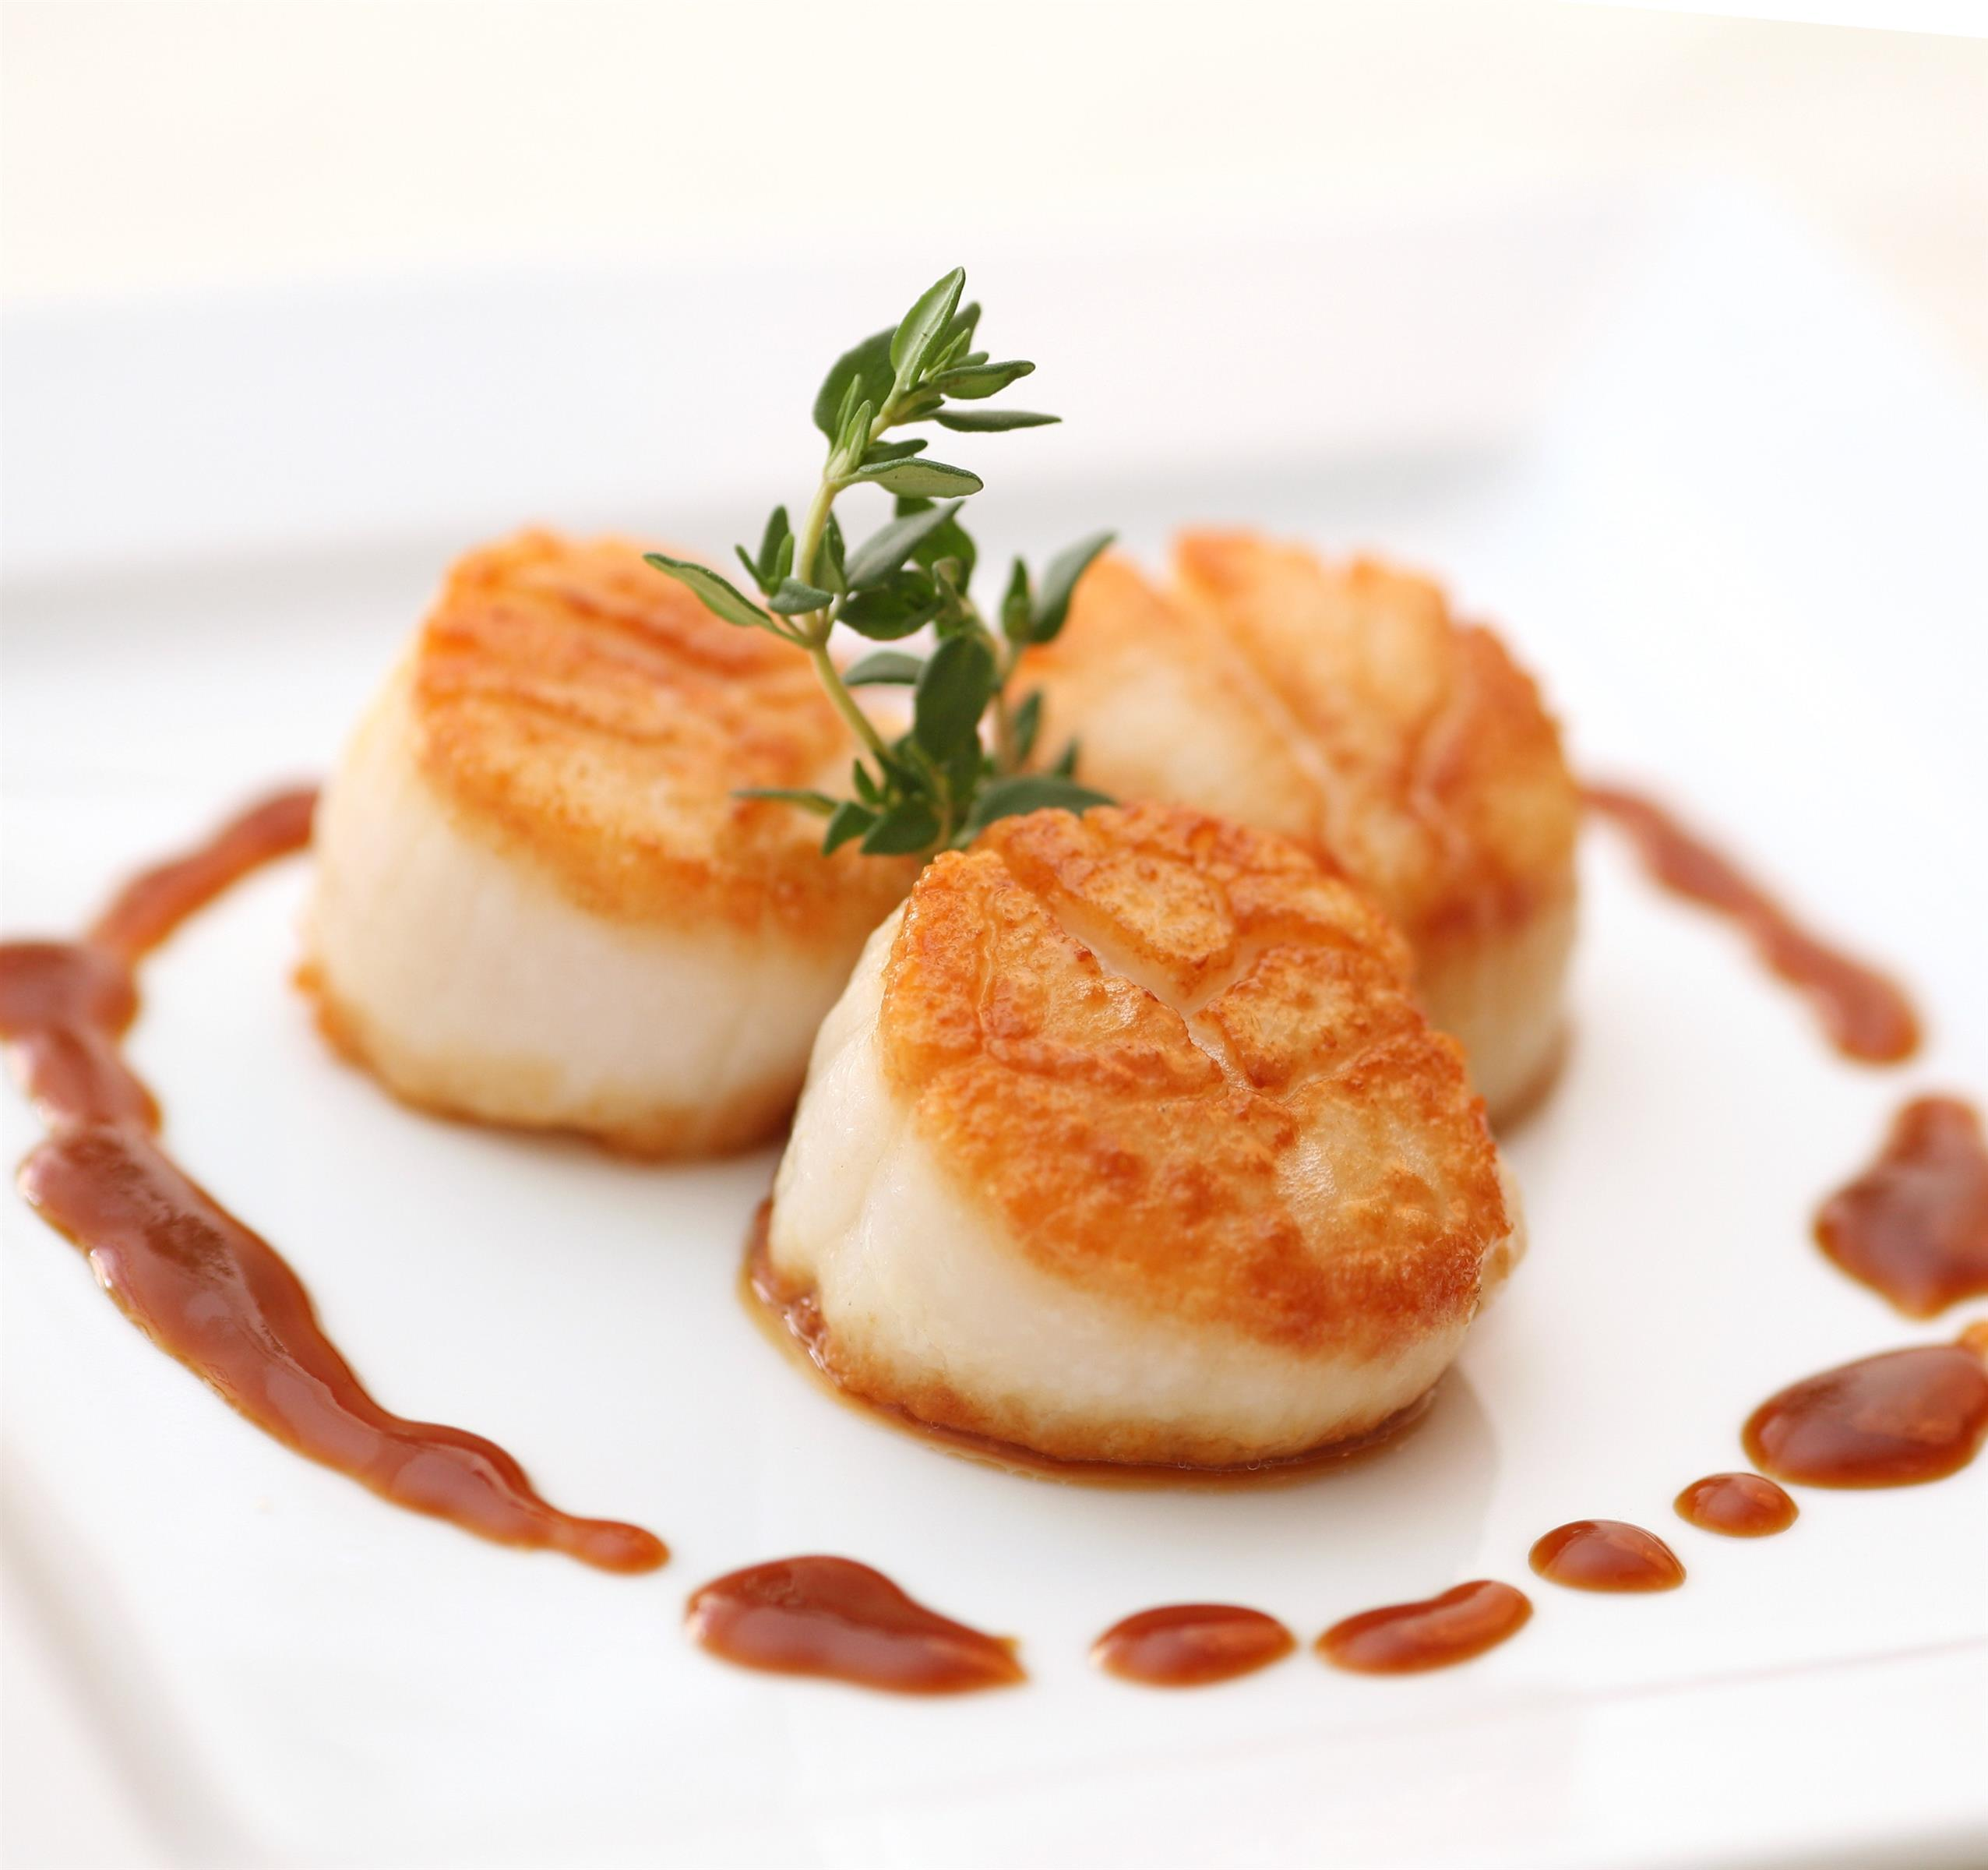 seared sea scallops with thyme and a sauce on the side